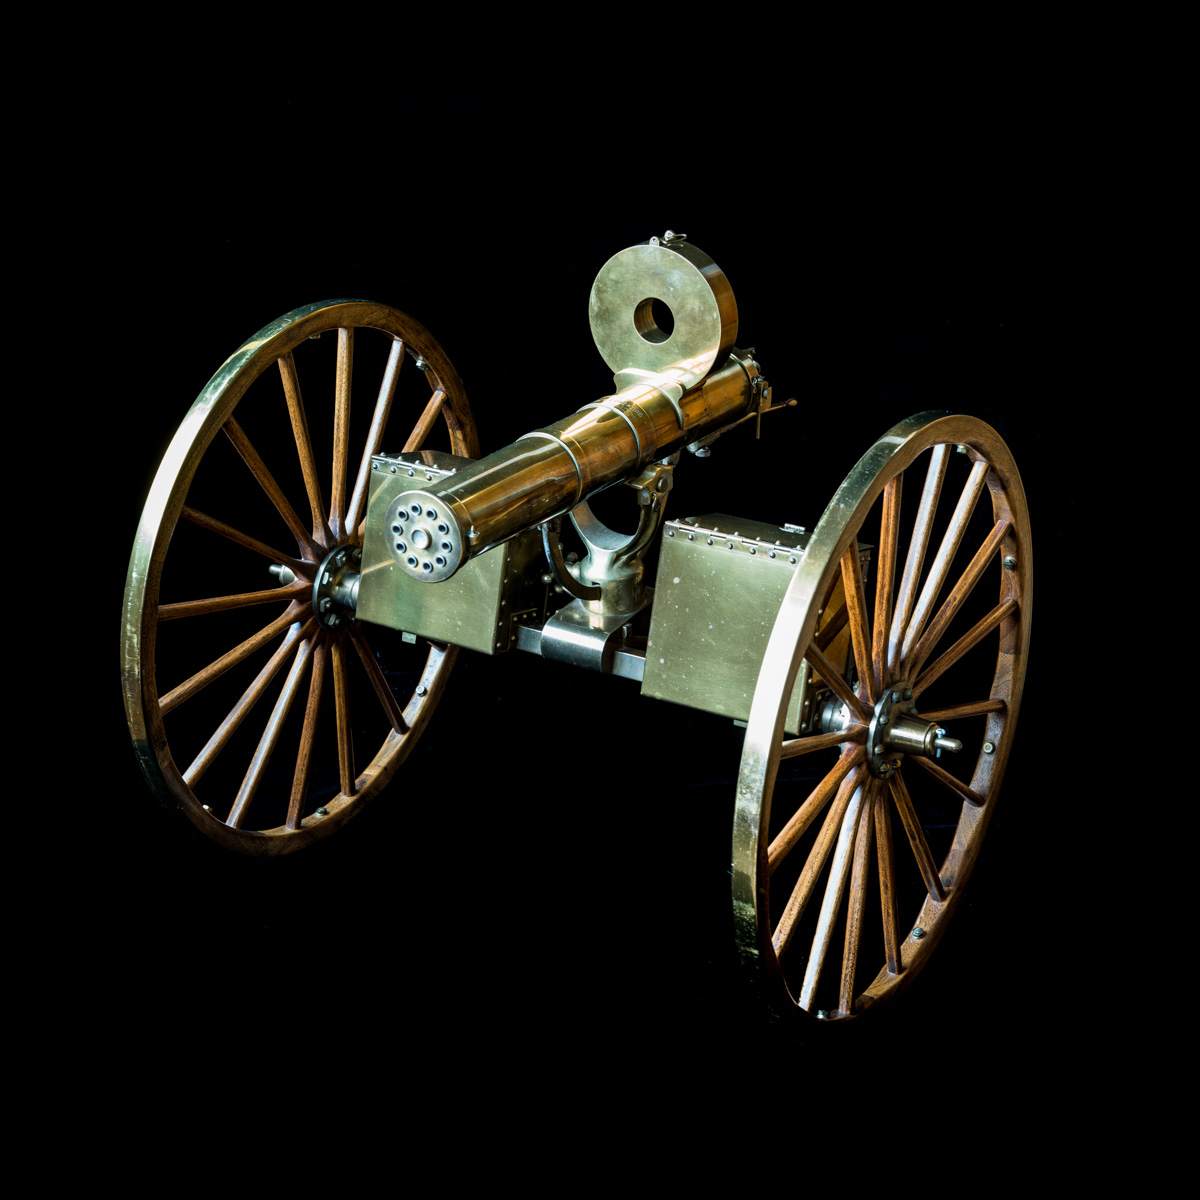 Gatling Gun 1-3rd size model-9